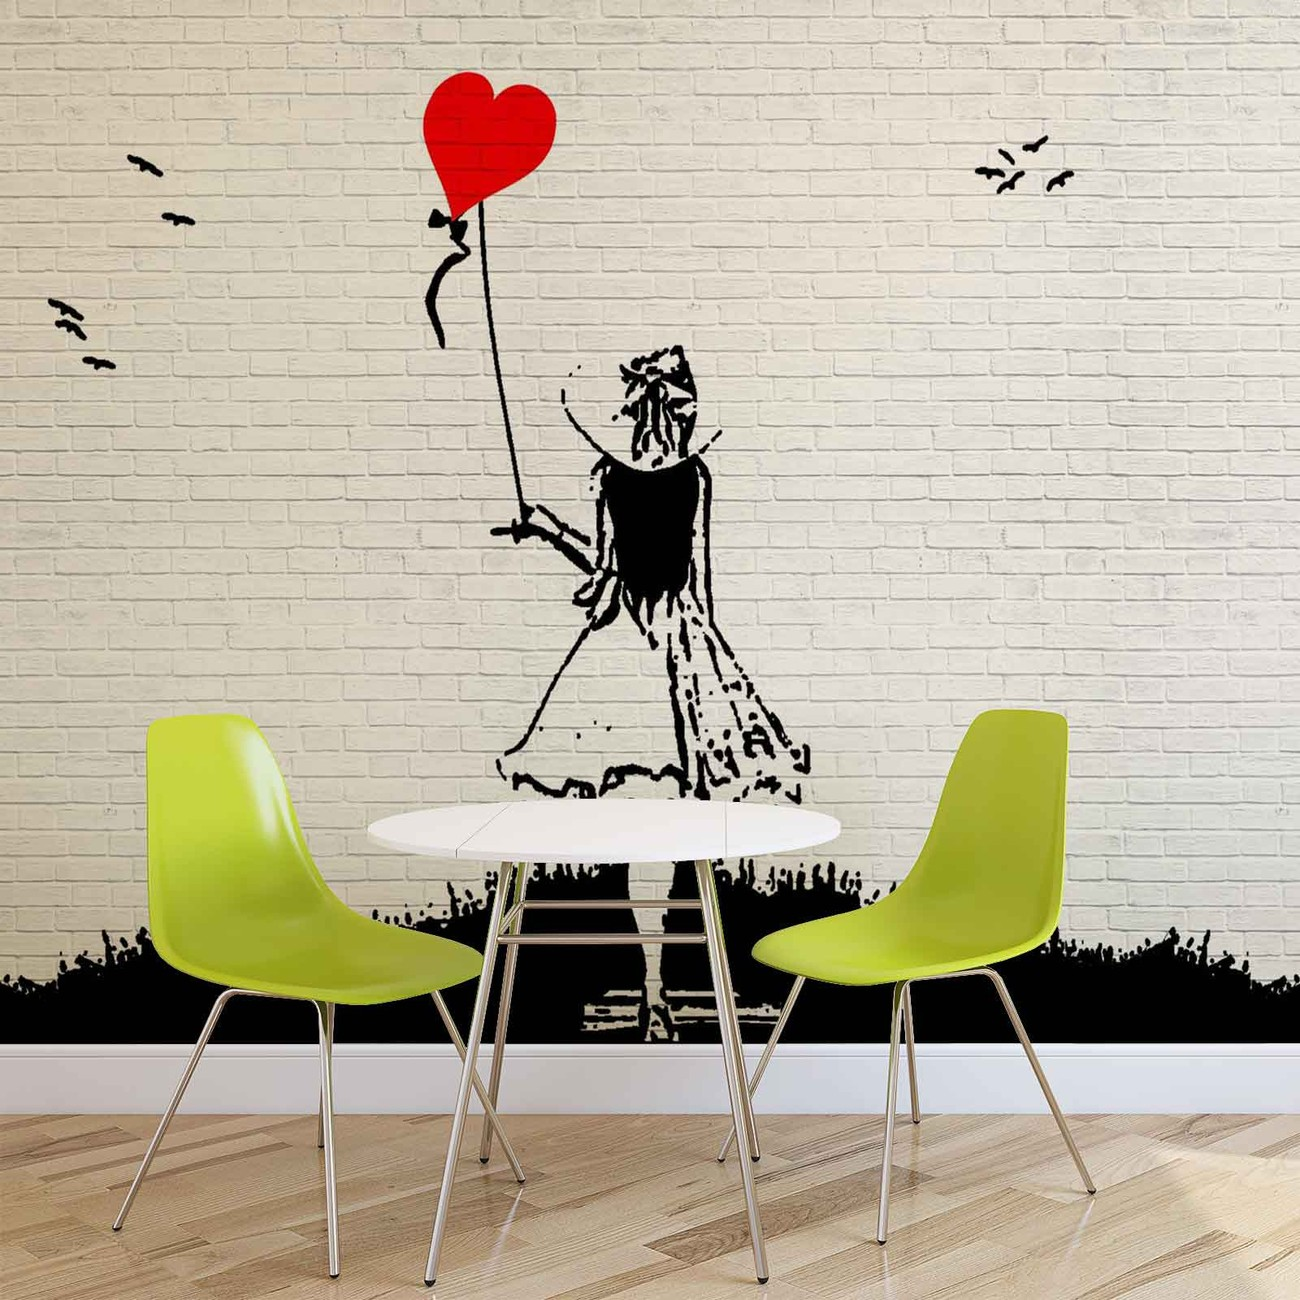 Wall Stickers Banksy Brick Wall Heart Balloon Girl Graffiti Fotobehang Behang